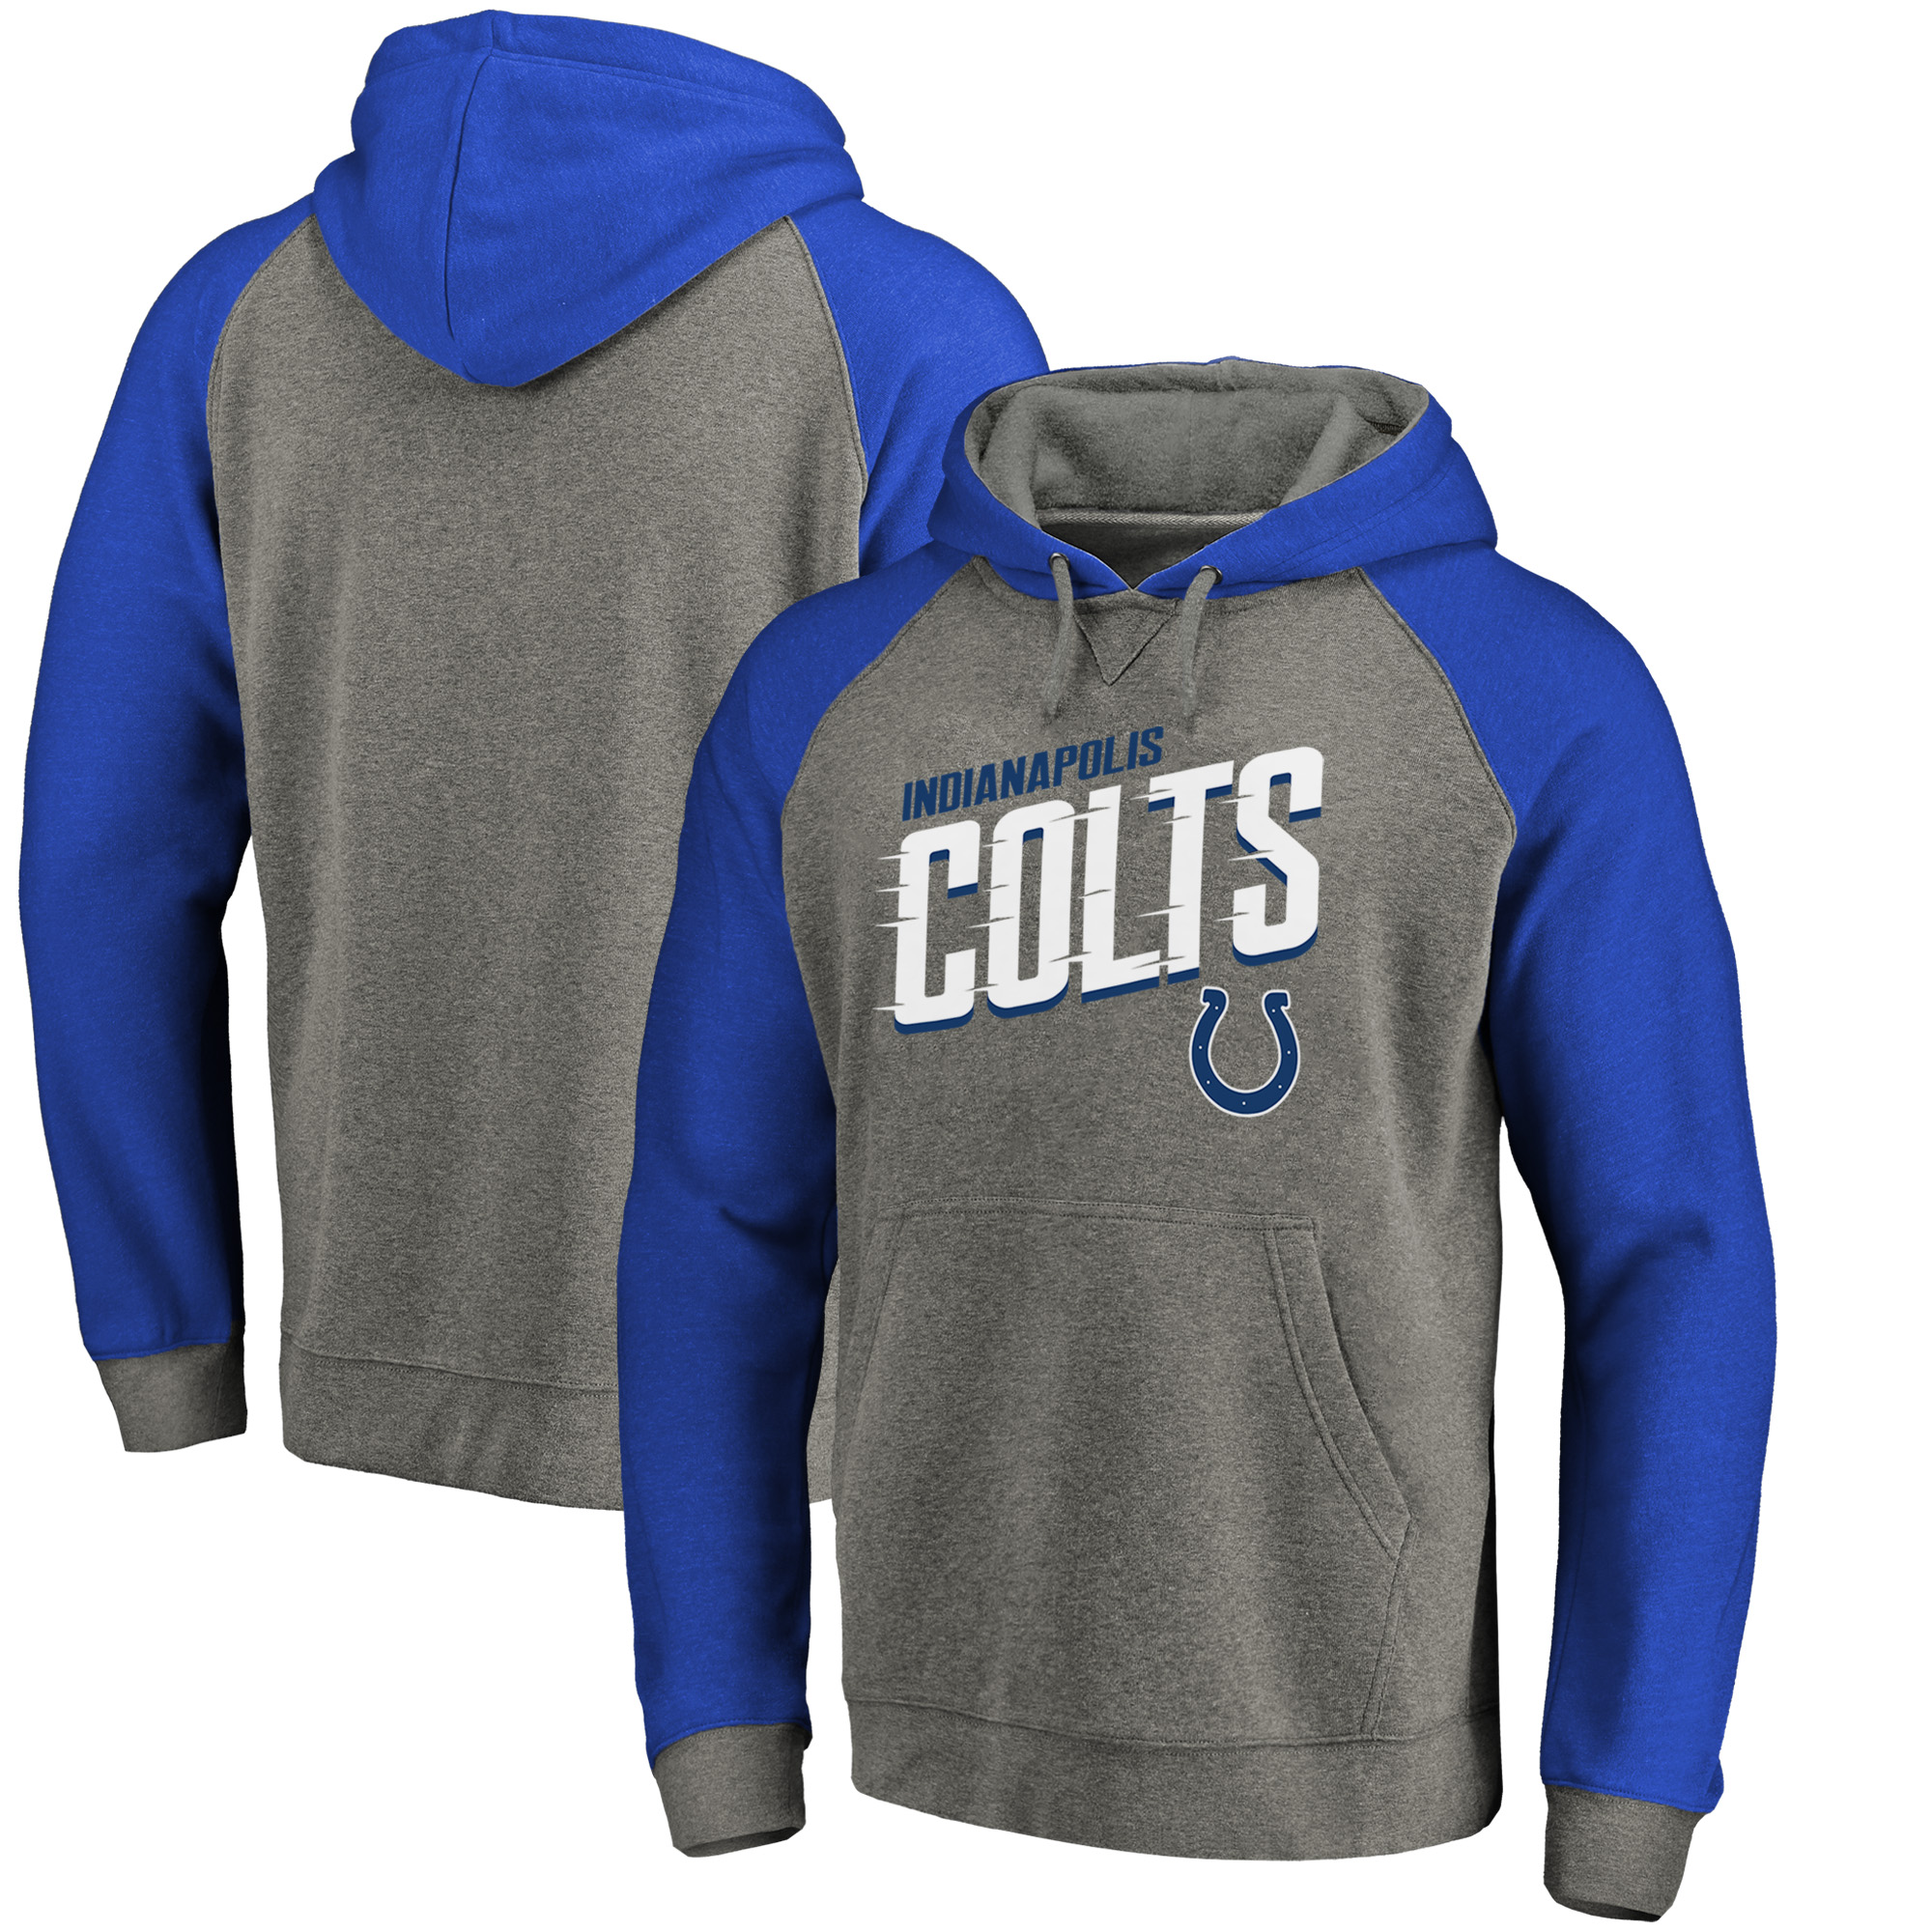 Indianapolis Colts NFL Pro Line by Fanatics Branded Big & Tall Slant Strike Tri-Blend Raglan Pullover Hoodie - Heathered Gray